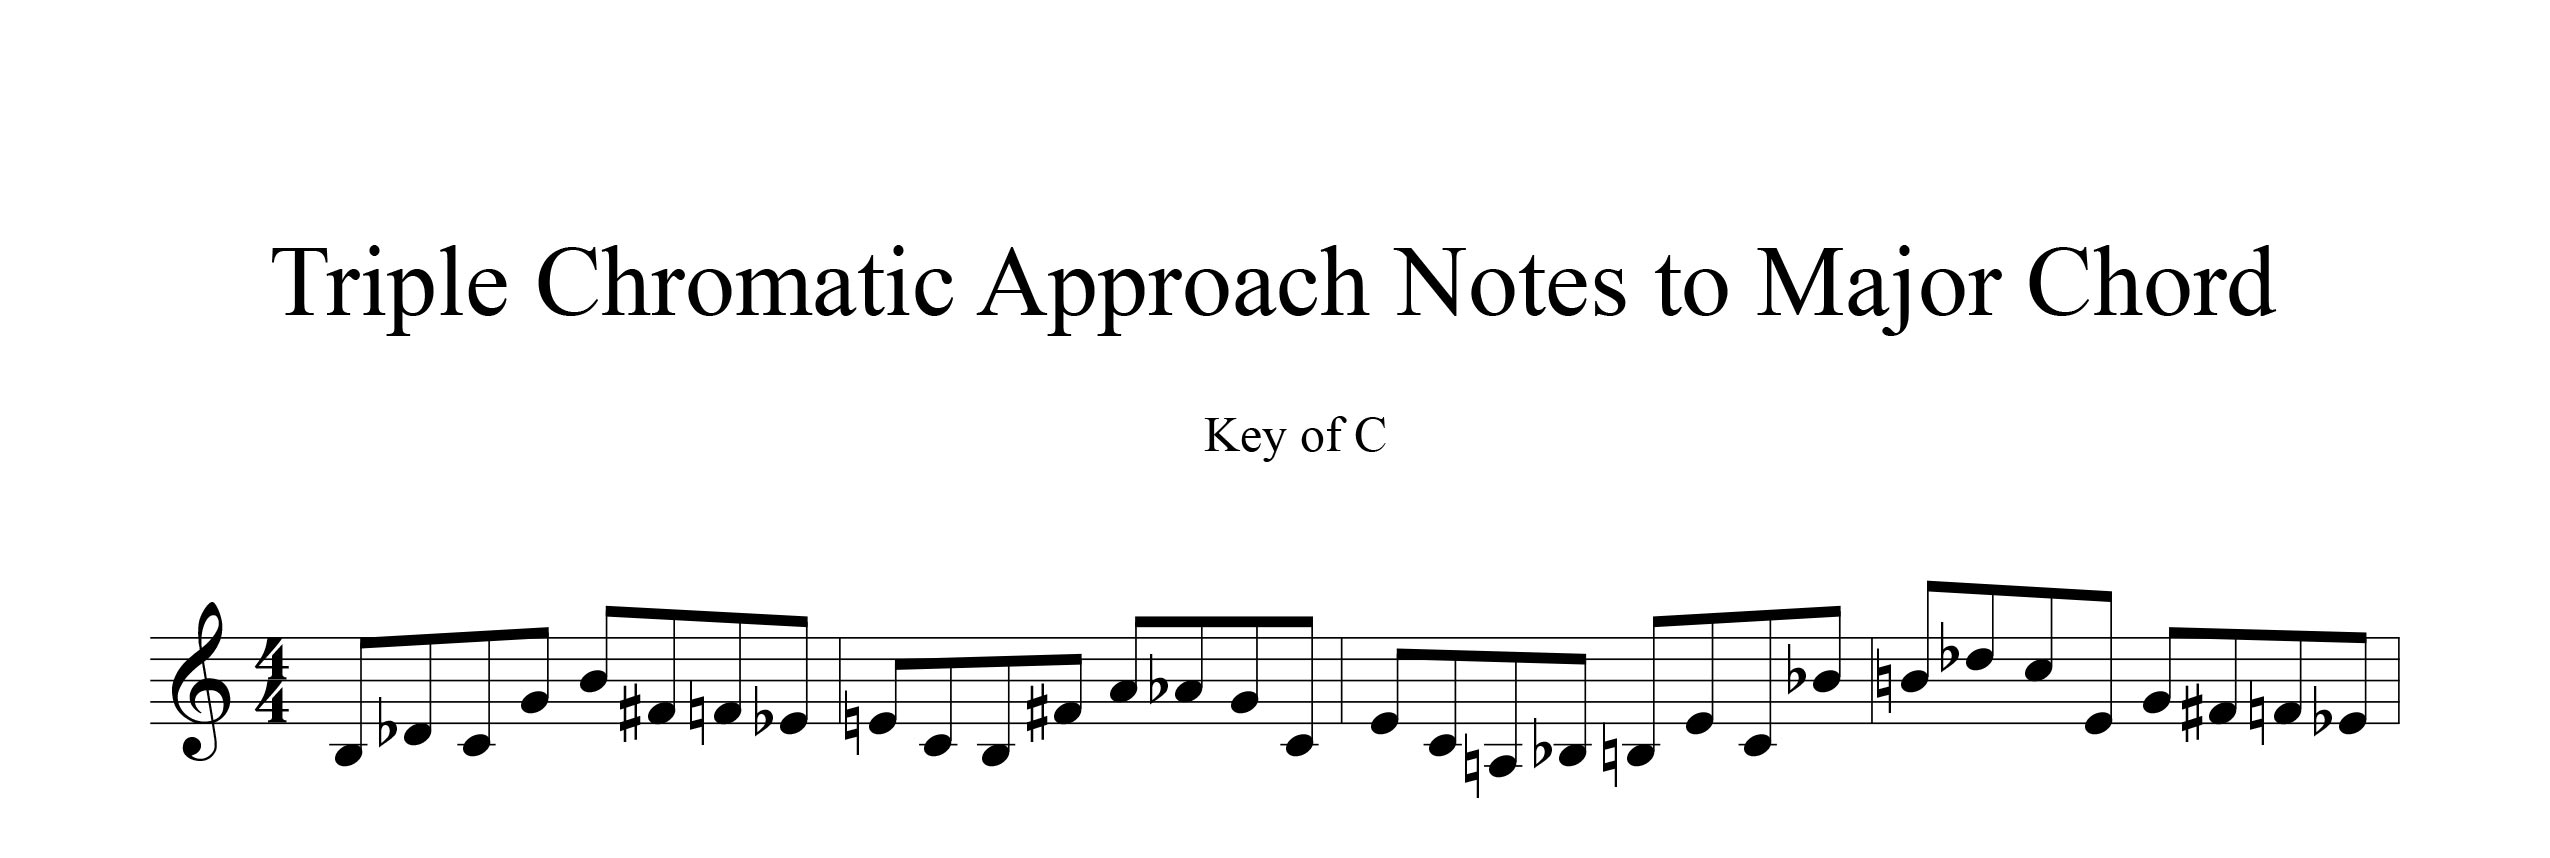 Melodic-Modulation-3-note-groups-Example-three-using-approach-notes-by-bruce-arnold-for-muse-eek-publishing-inc.